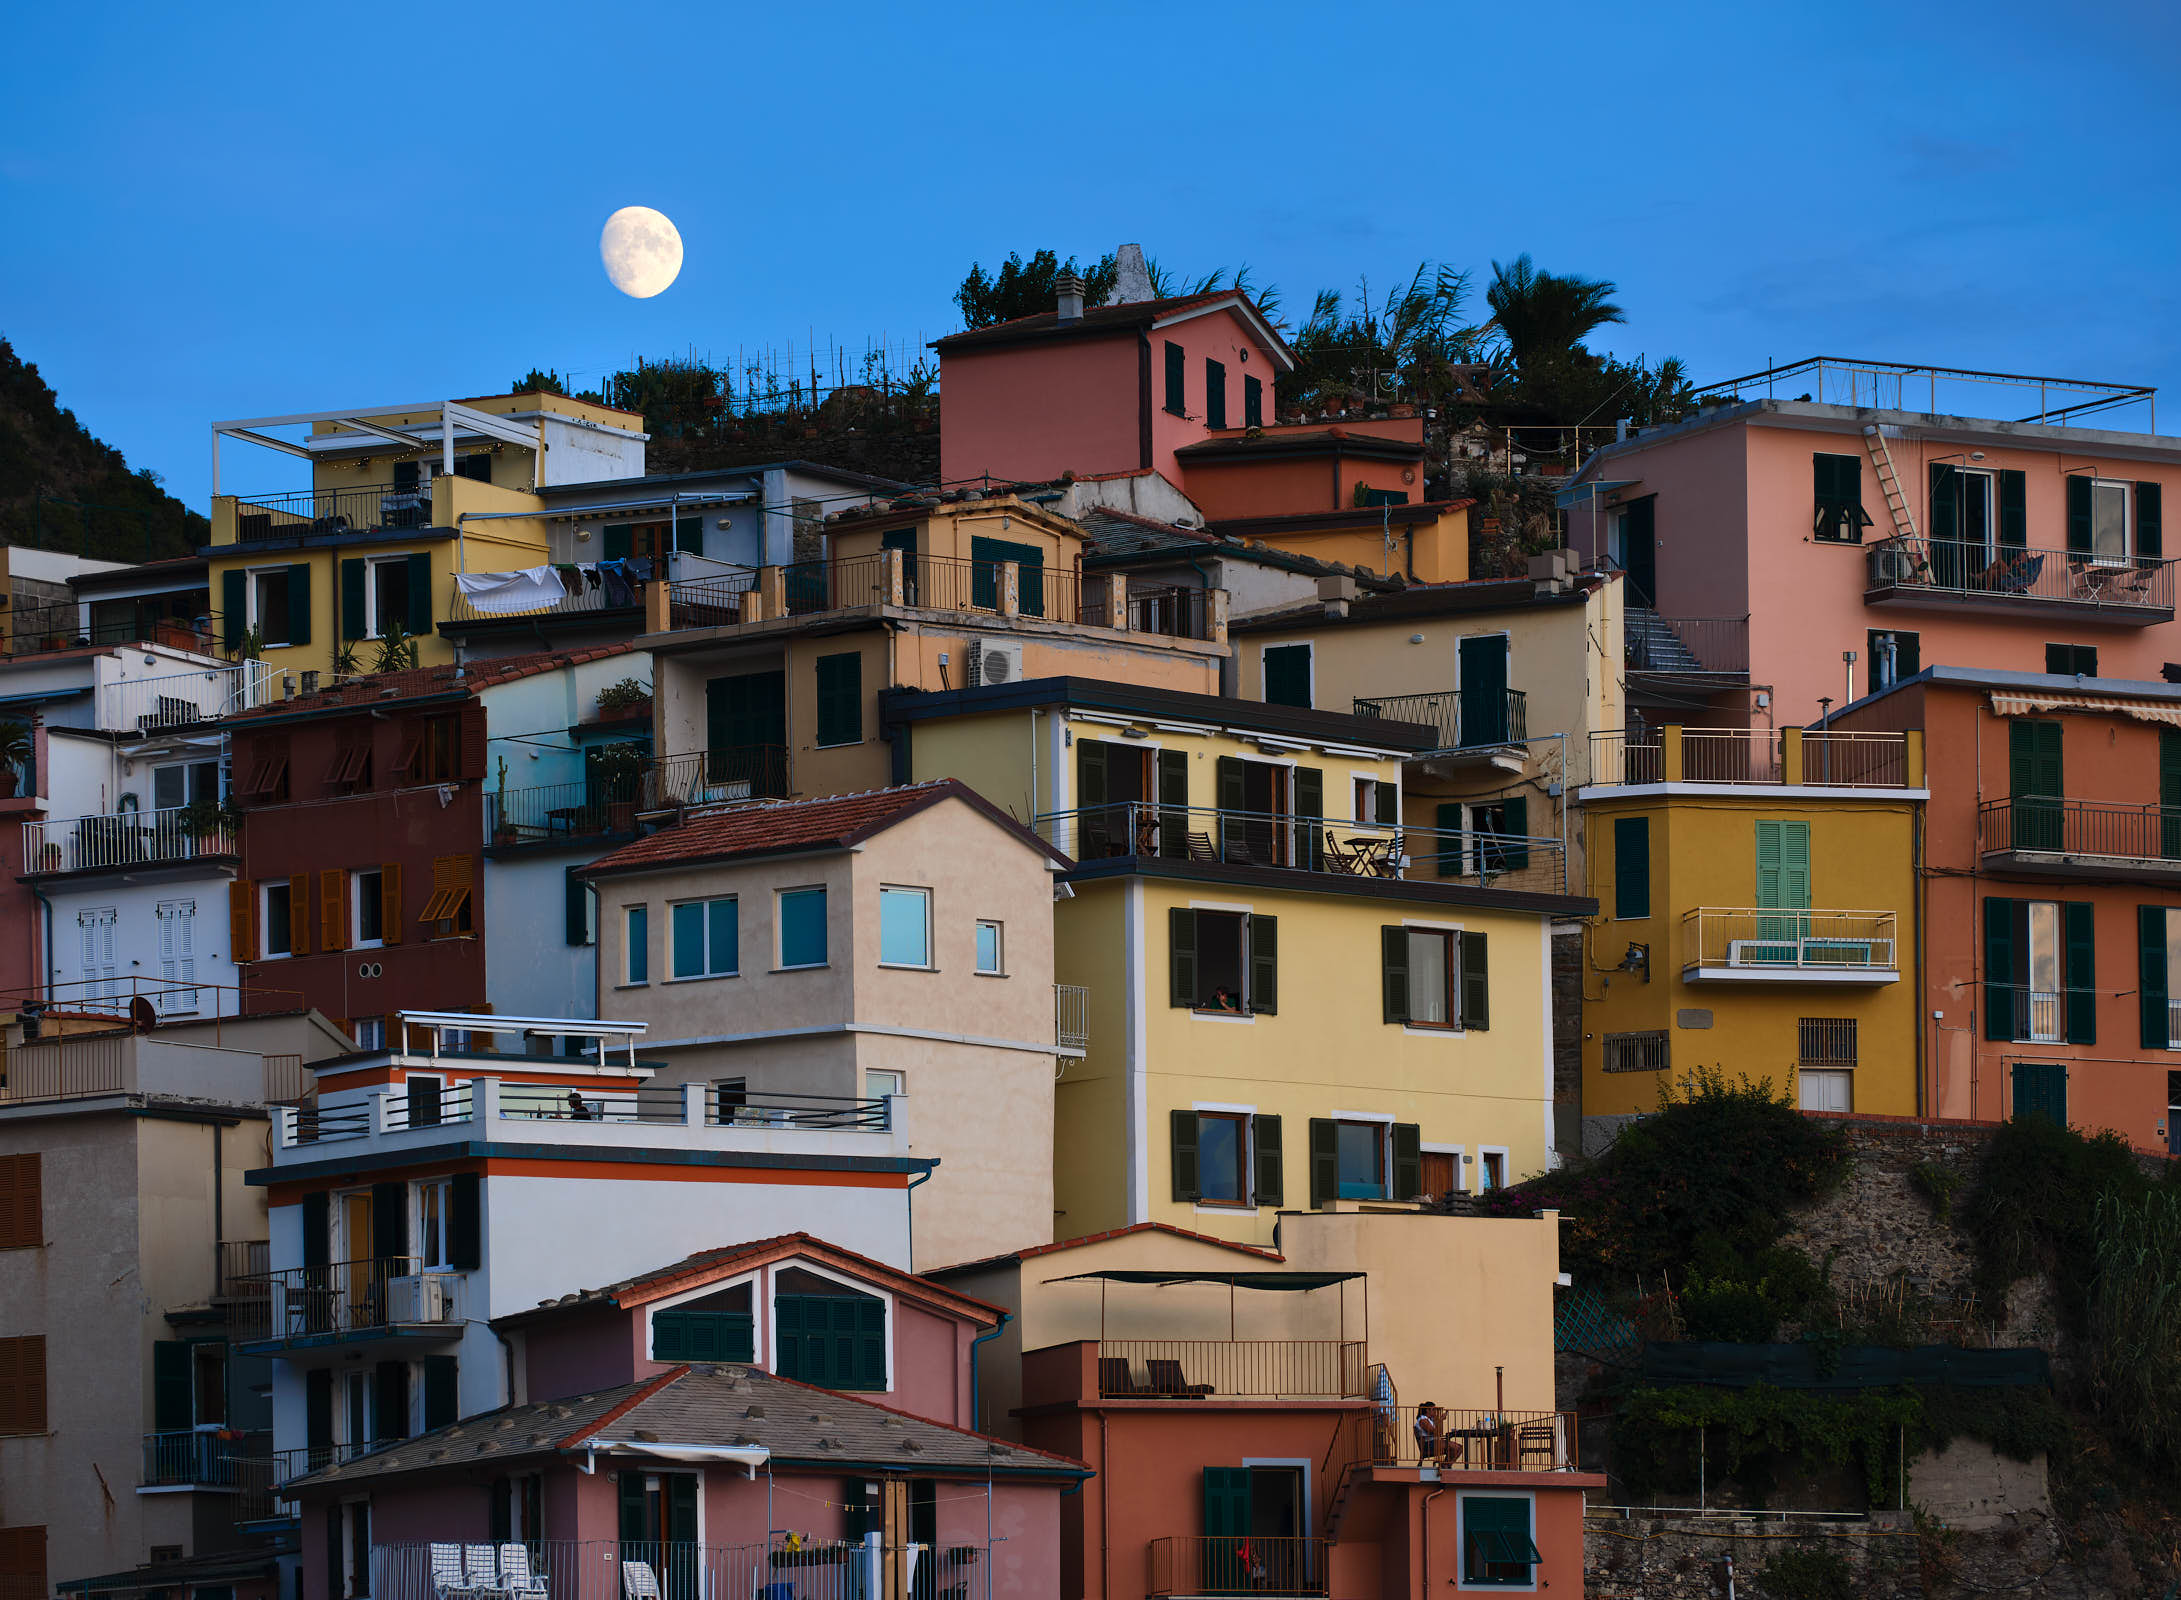 Moonrise at Manarola, Cinque Terre